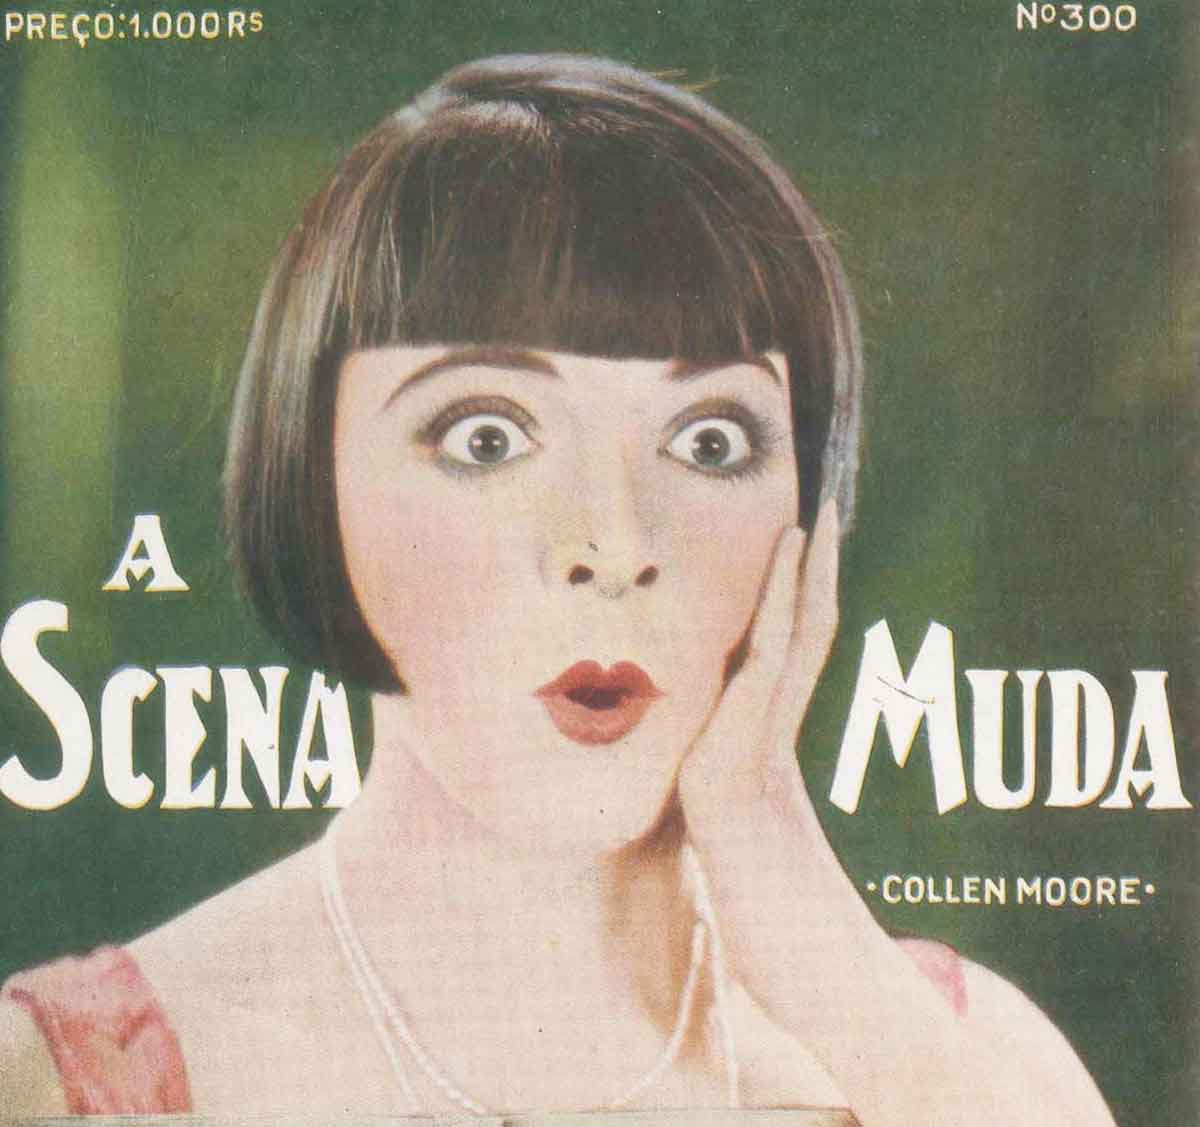 Colleen Moore- dutch bob hairstyle